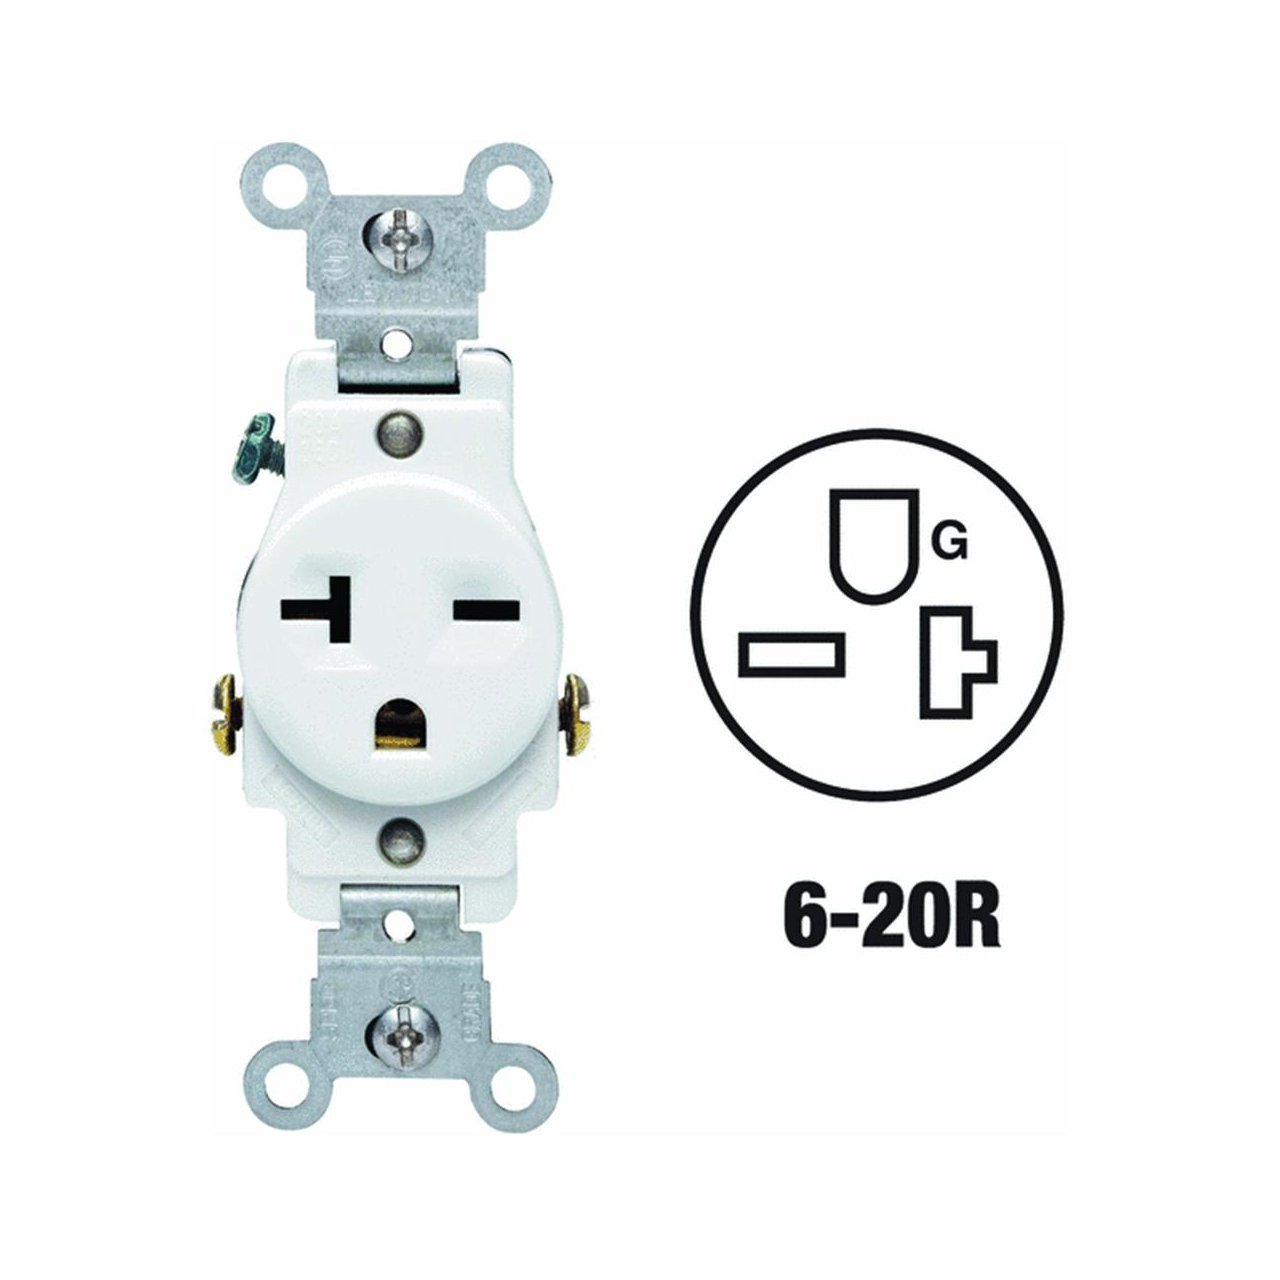 hight resolution of 107 05821 wsp 20 amp 250 volt single receptacle electrical power outlet white all power contacts are triple wipe for maximum conductivity and plug